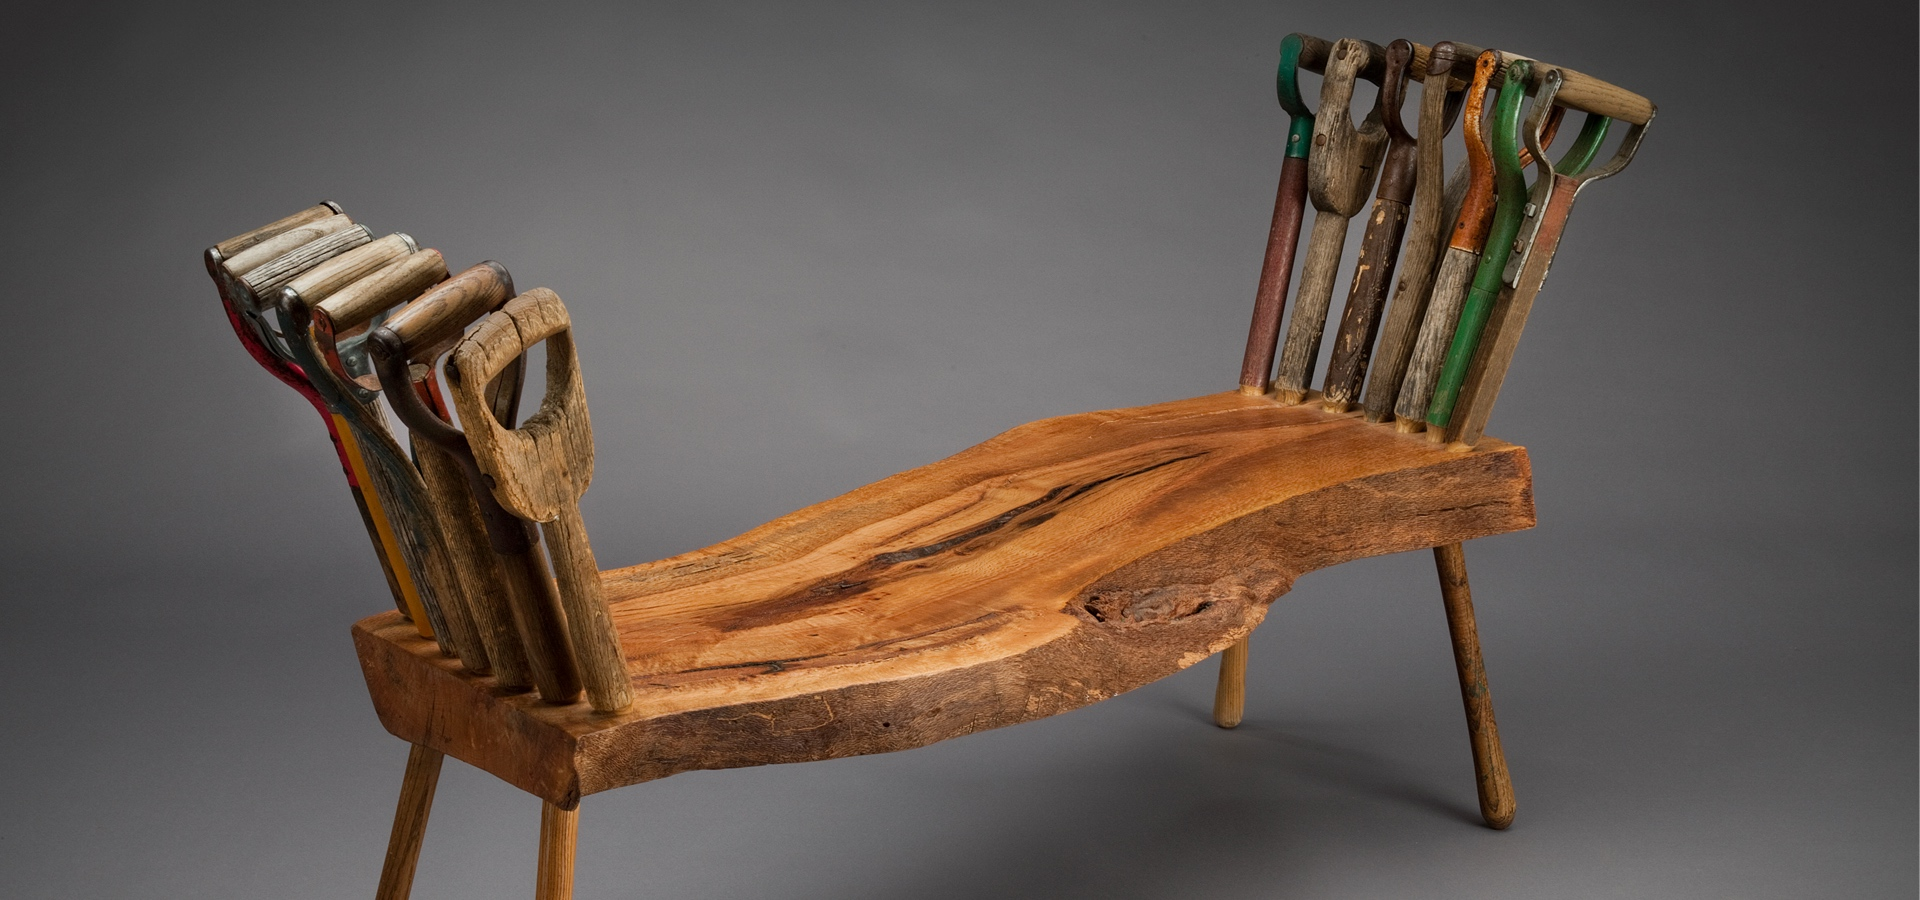 Wood bench with tool handles as decorative supports on either side